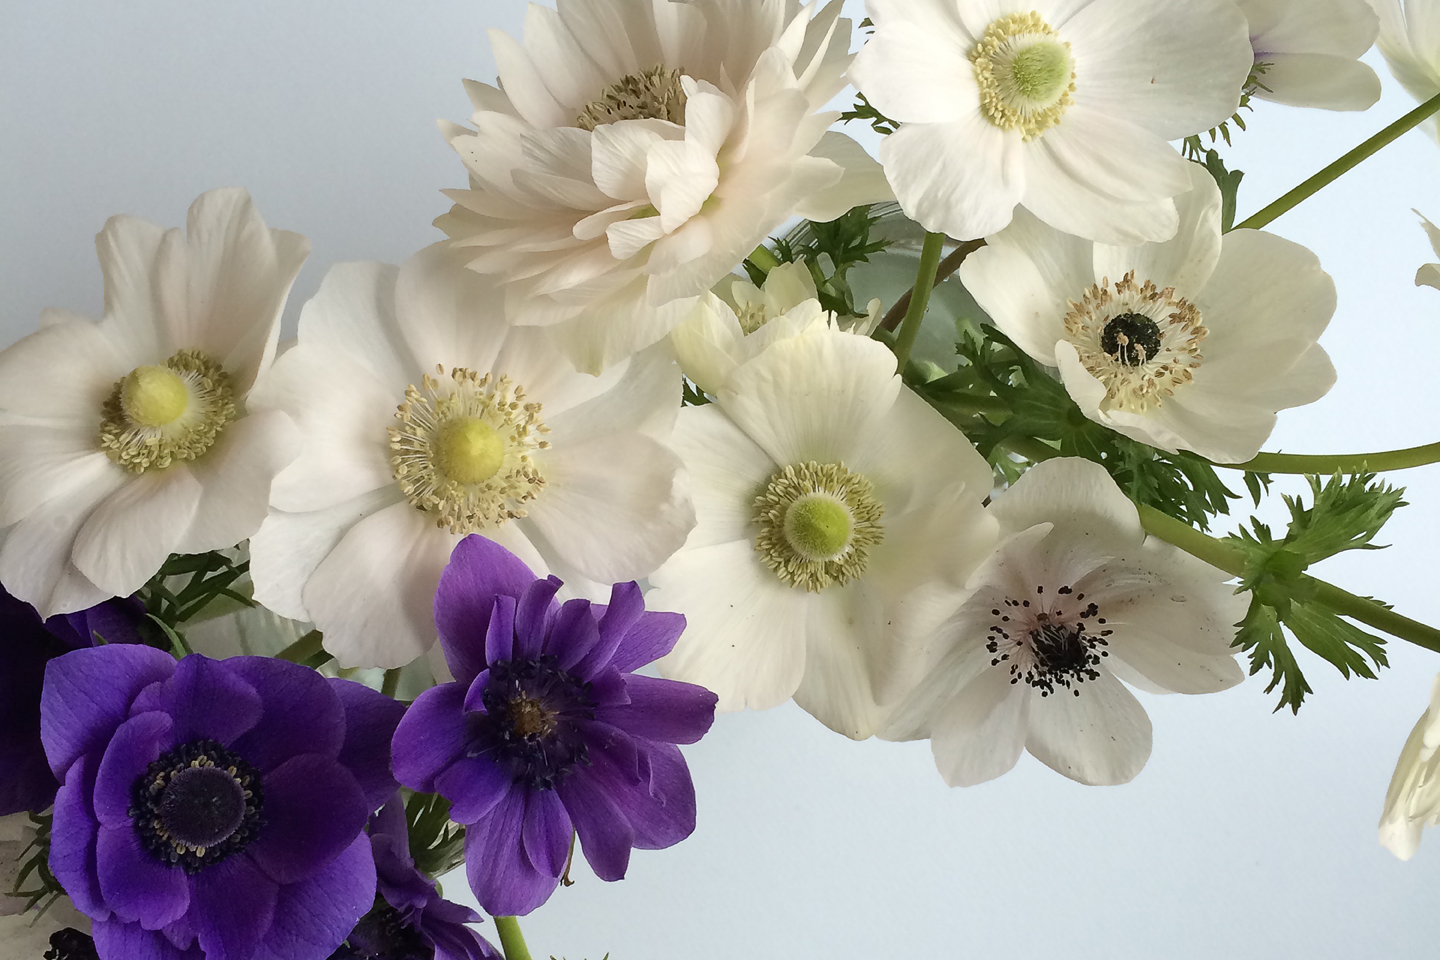 Anemone Season has Arrived